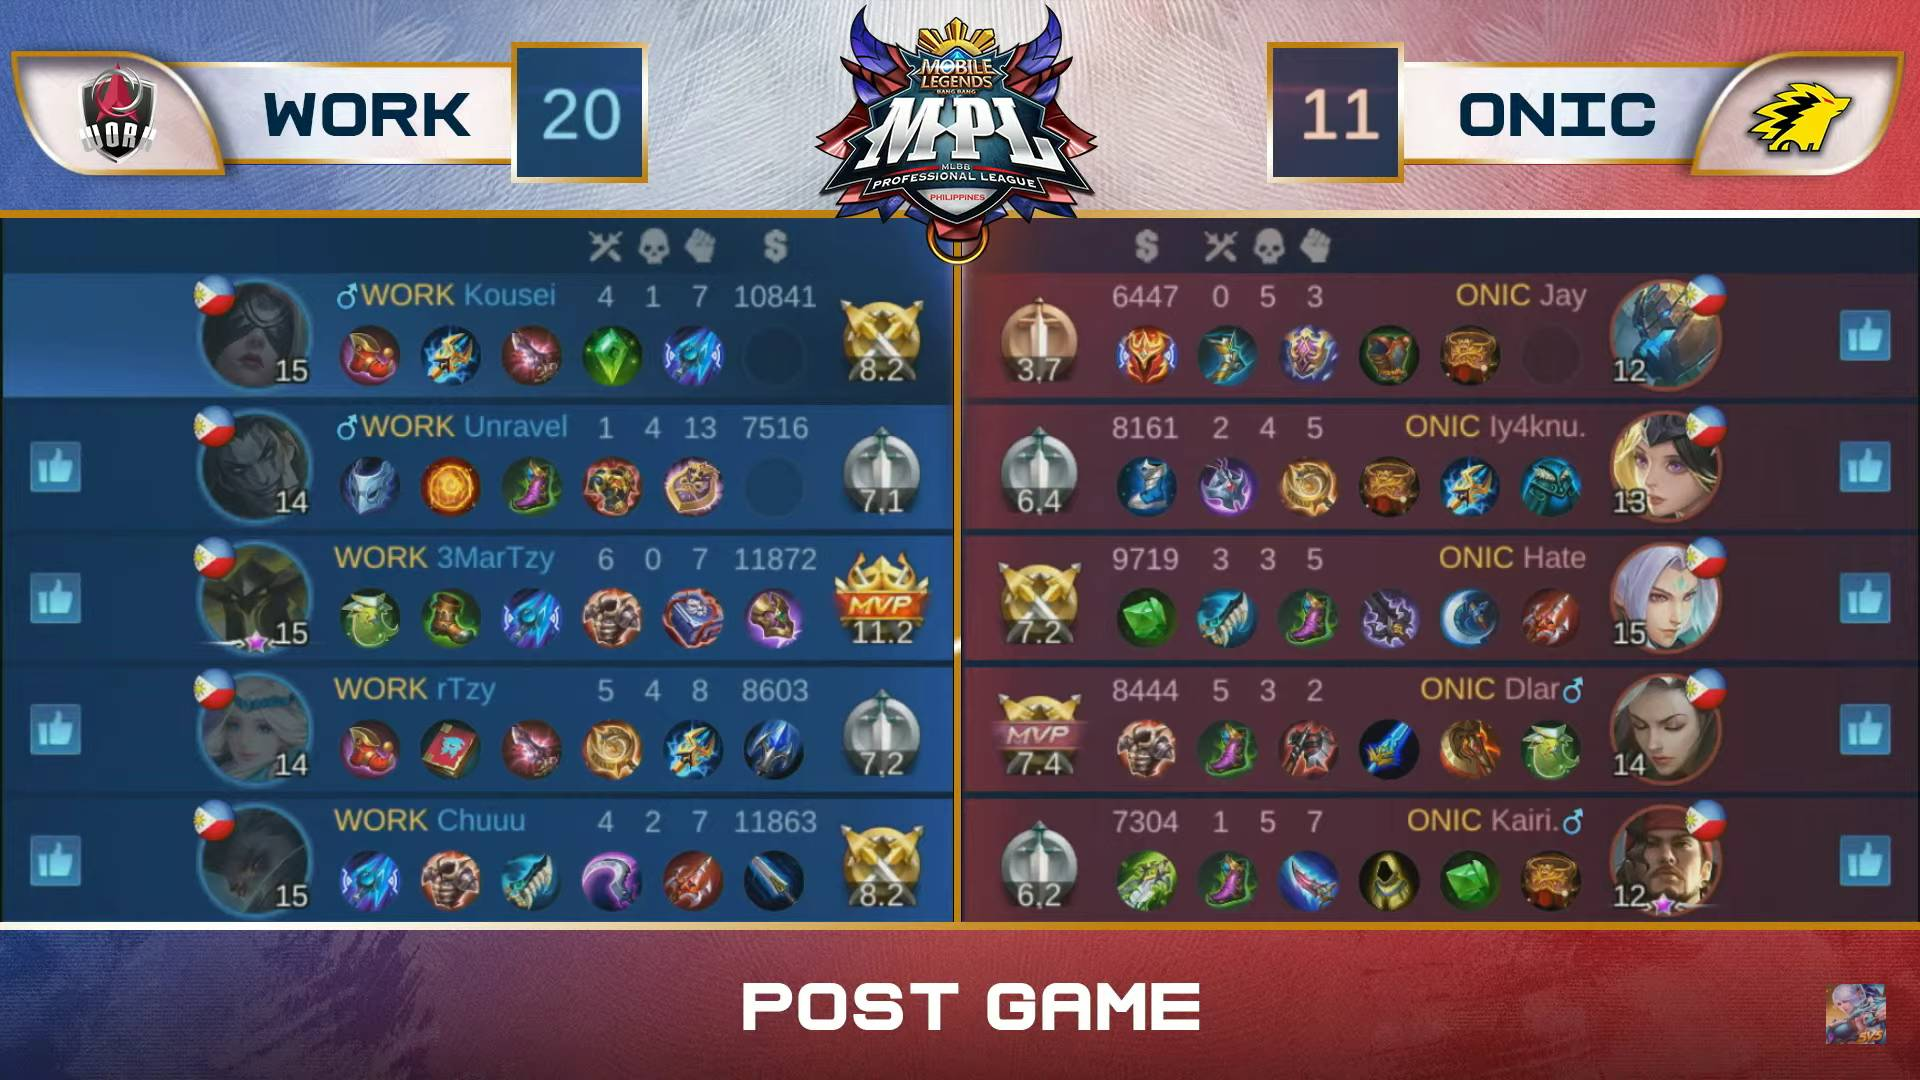 MPL-PH-Season-7-Work-Auster-def-ONIC-Game-1 Work Auster sweeps ONIC, all set to claim MPL PH upper bracket playoff ESports Mobile Legends MPL-PH News  - philippine sports news